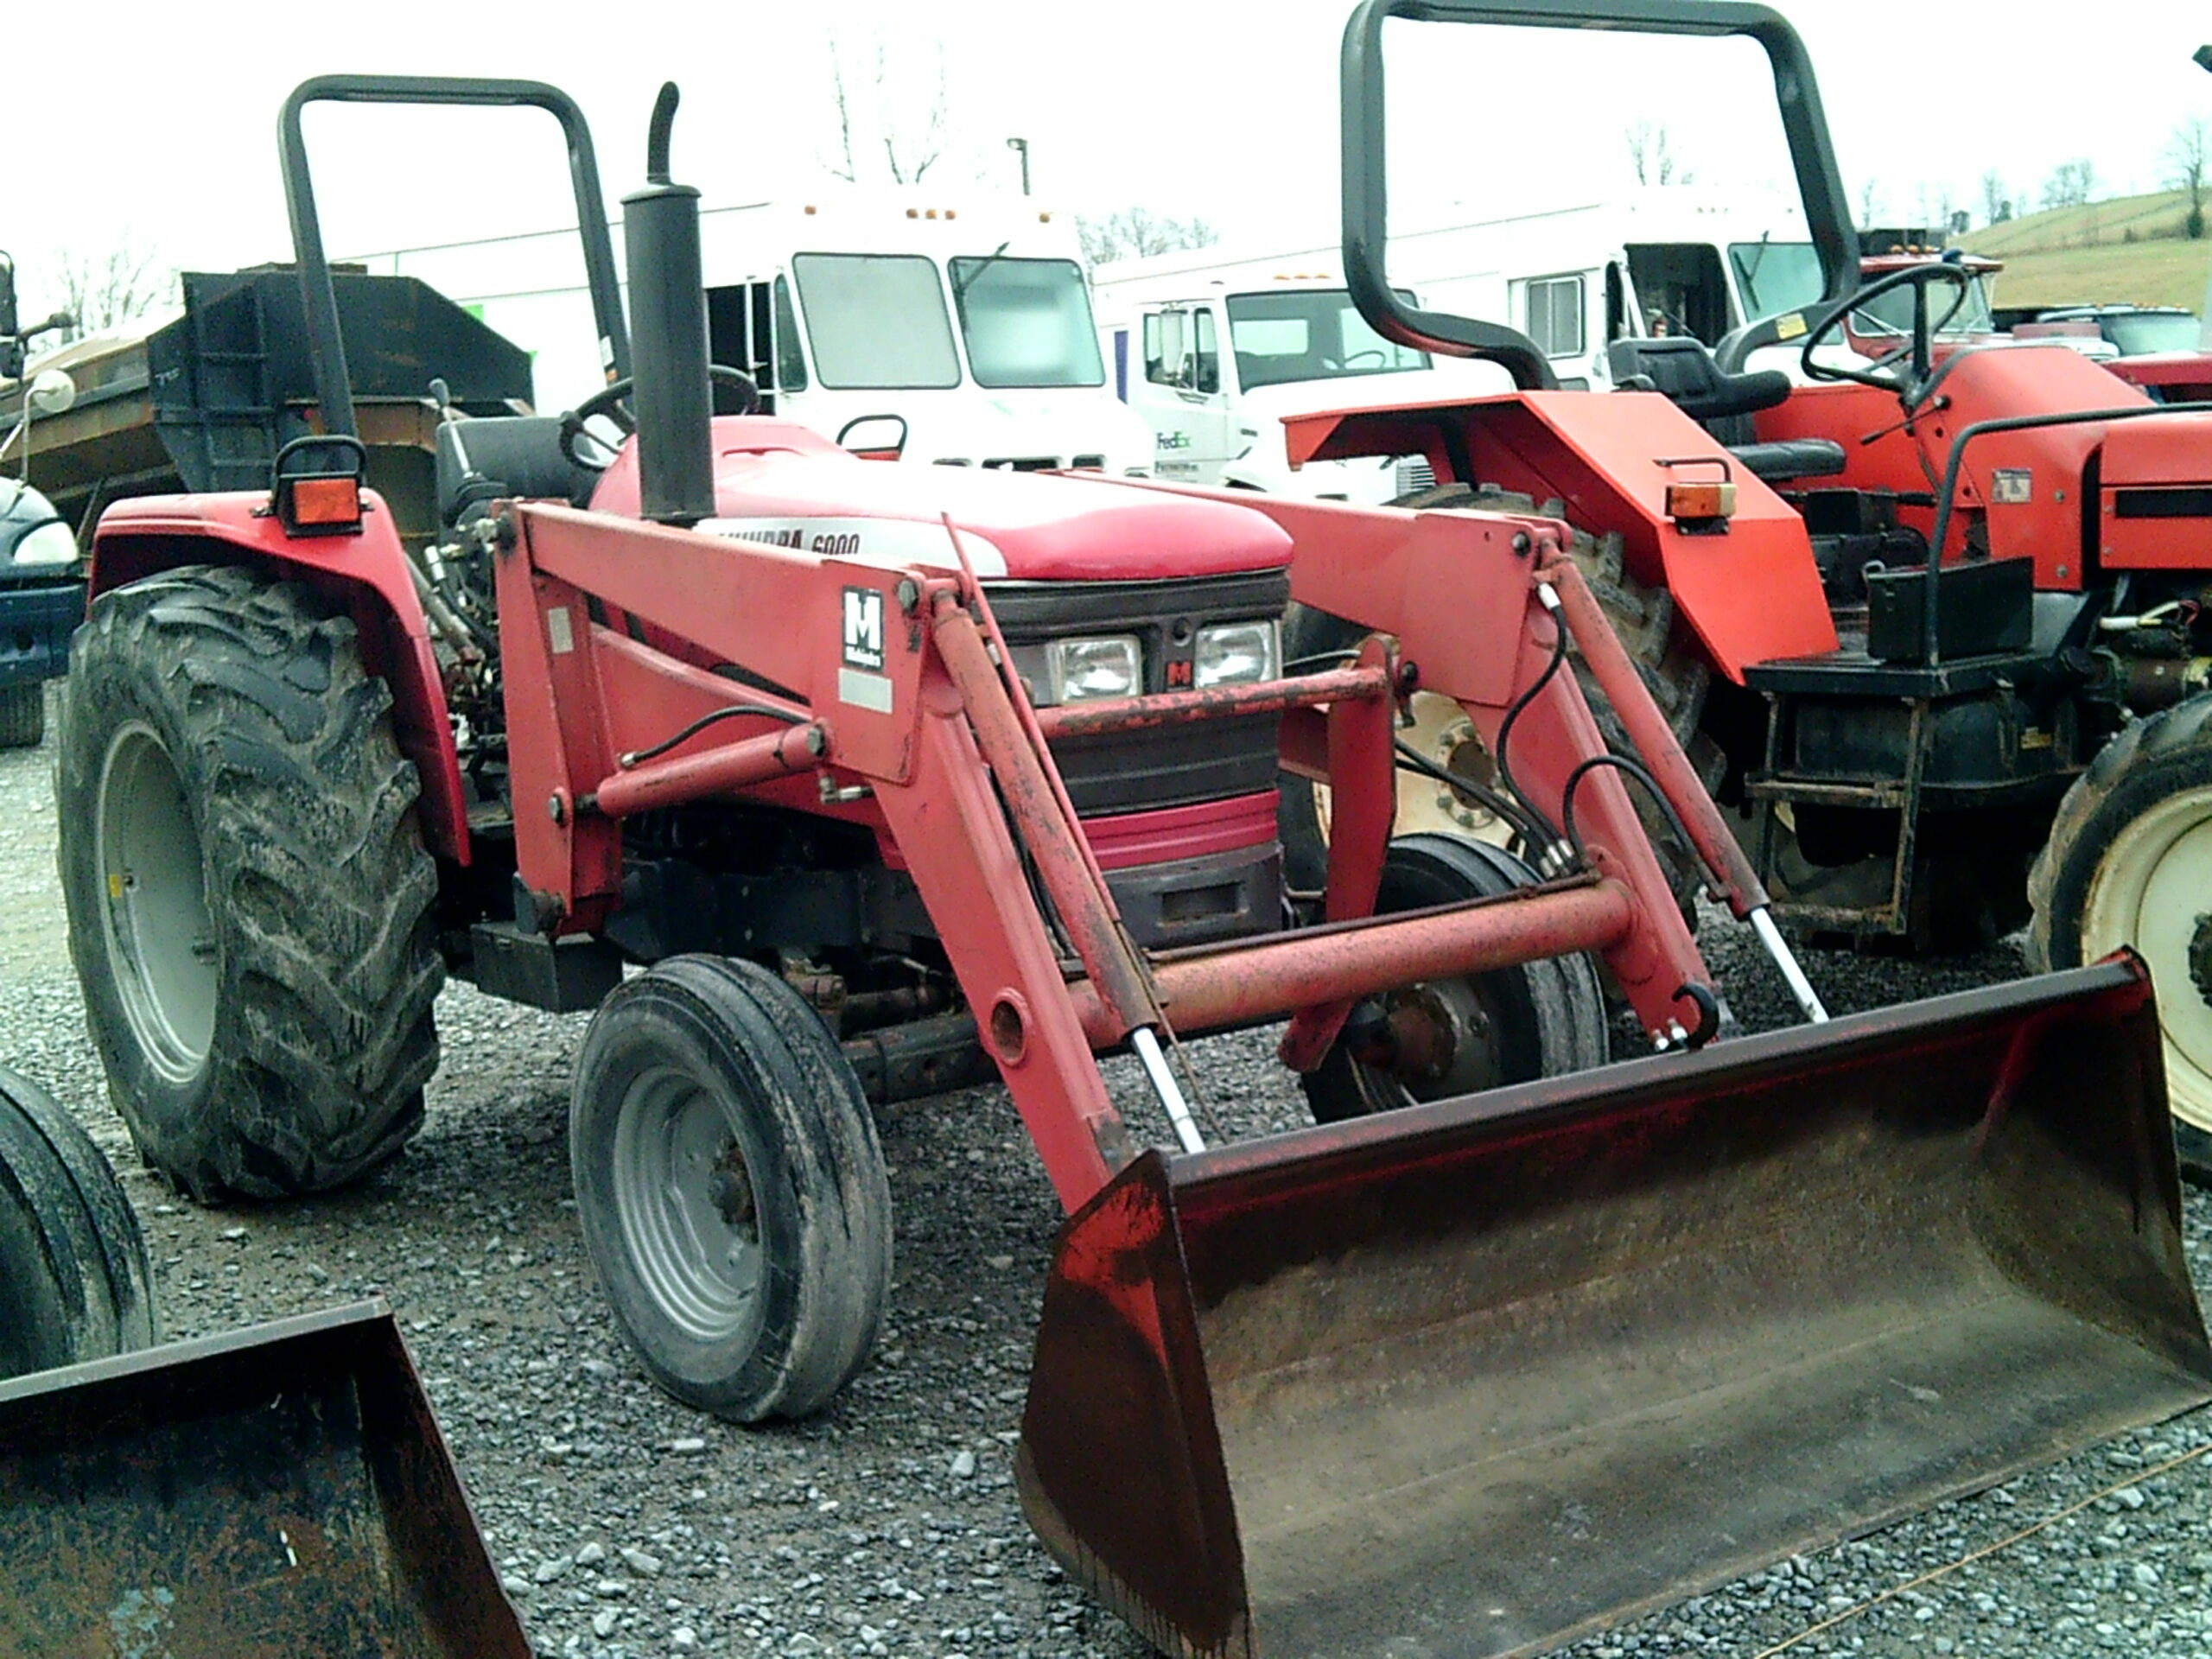 MAHINDRA 6000 TRACTOR WITH FRONT END LOADER Image